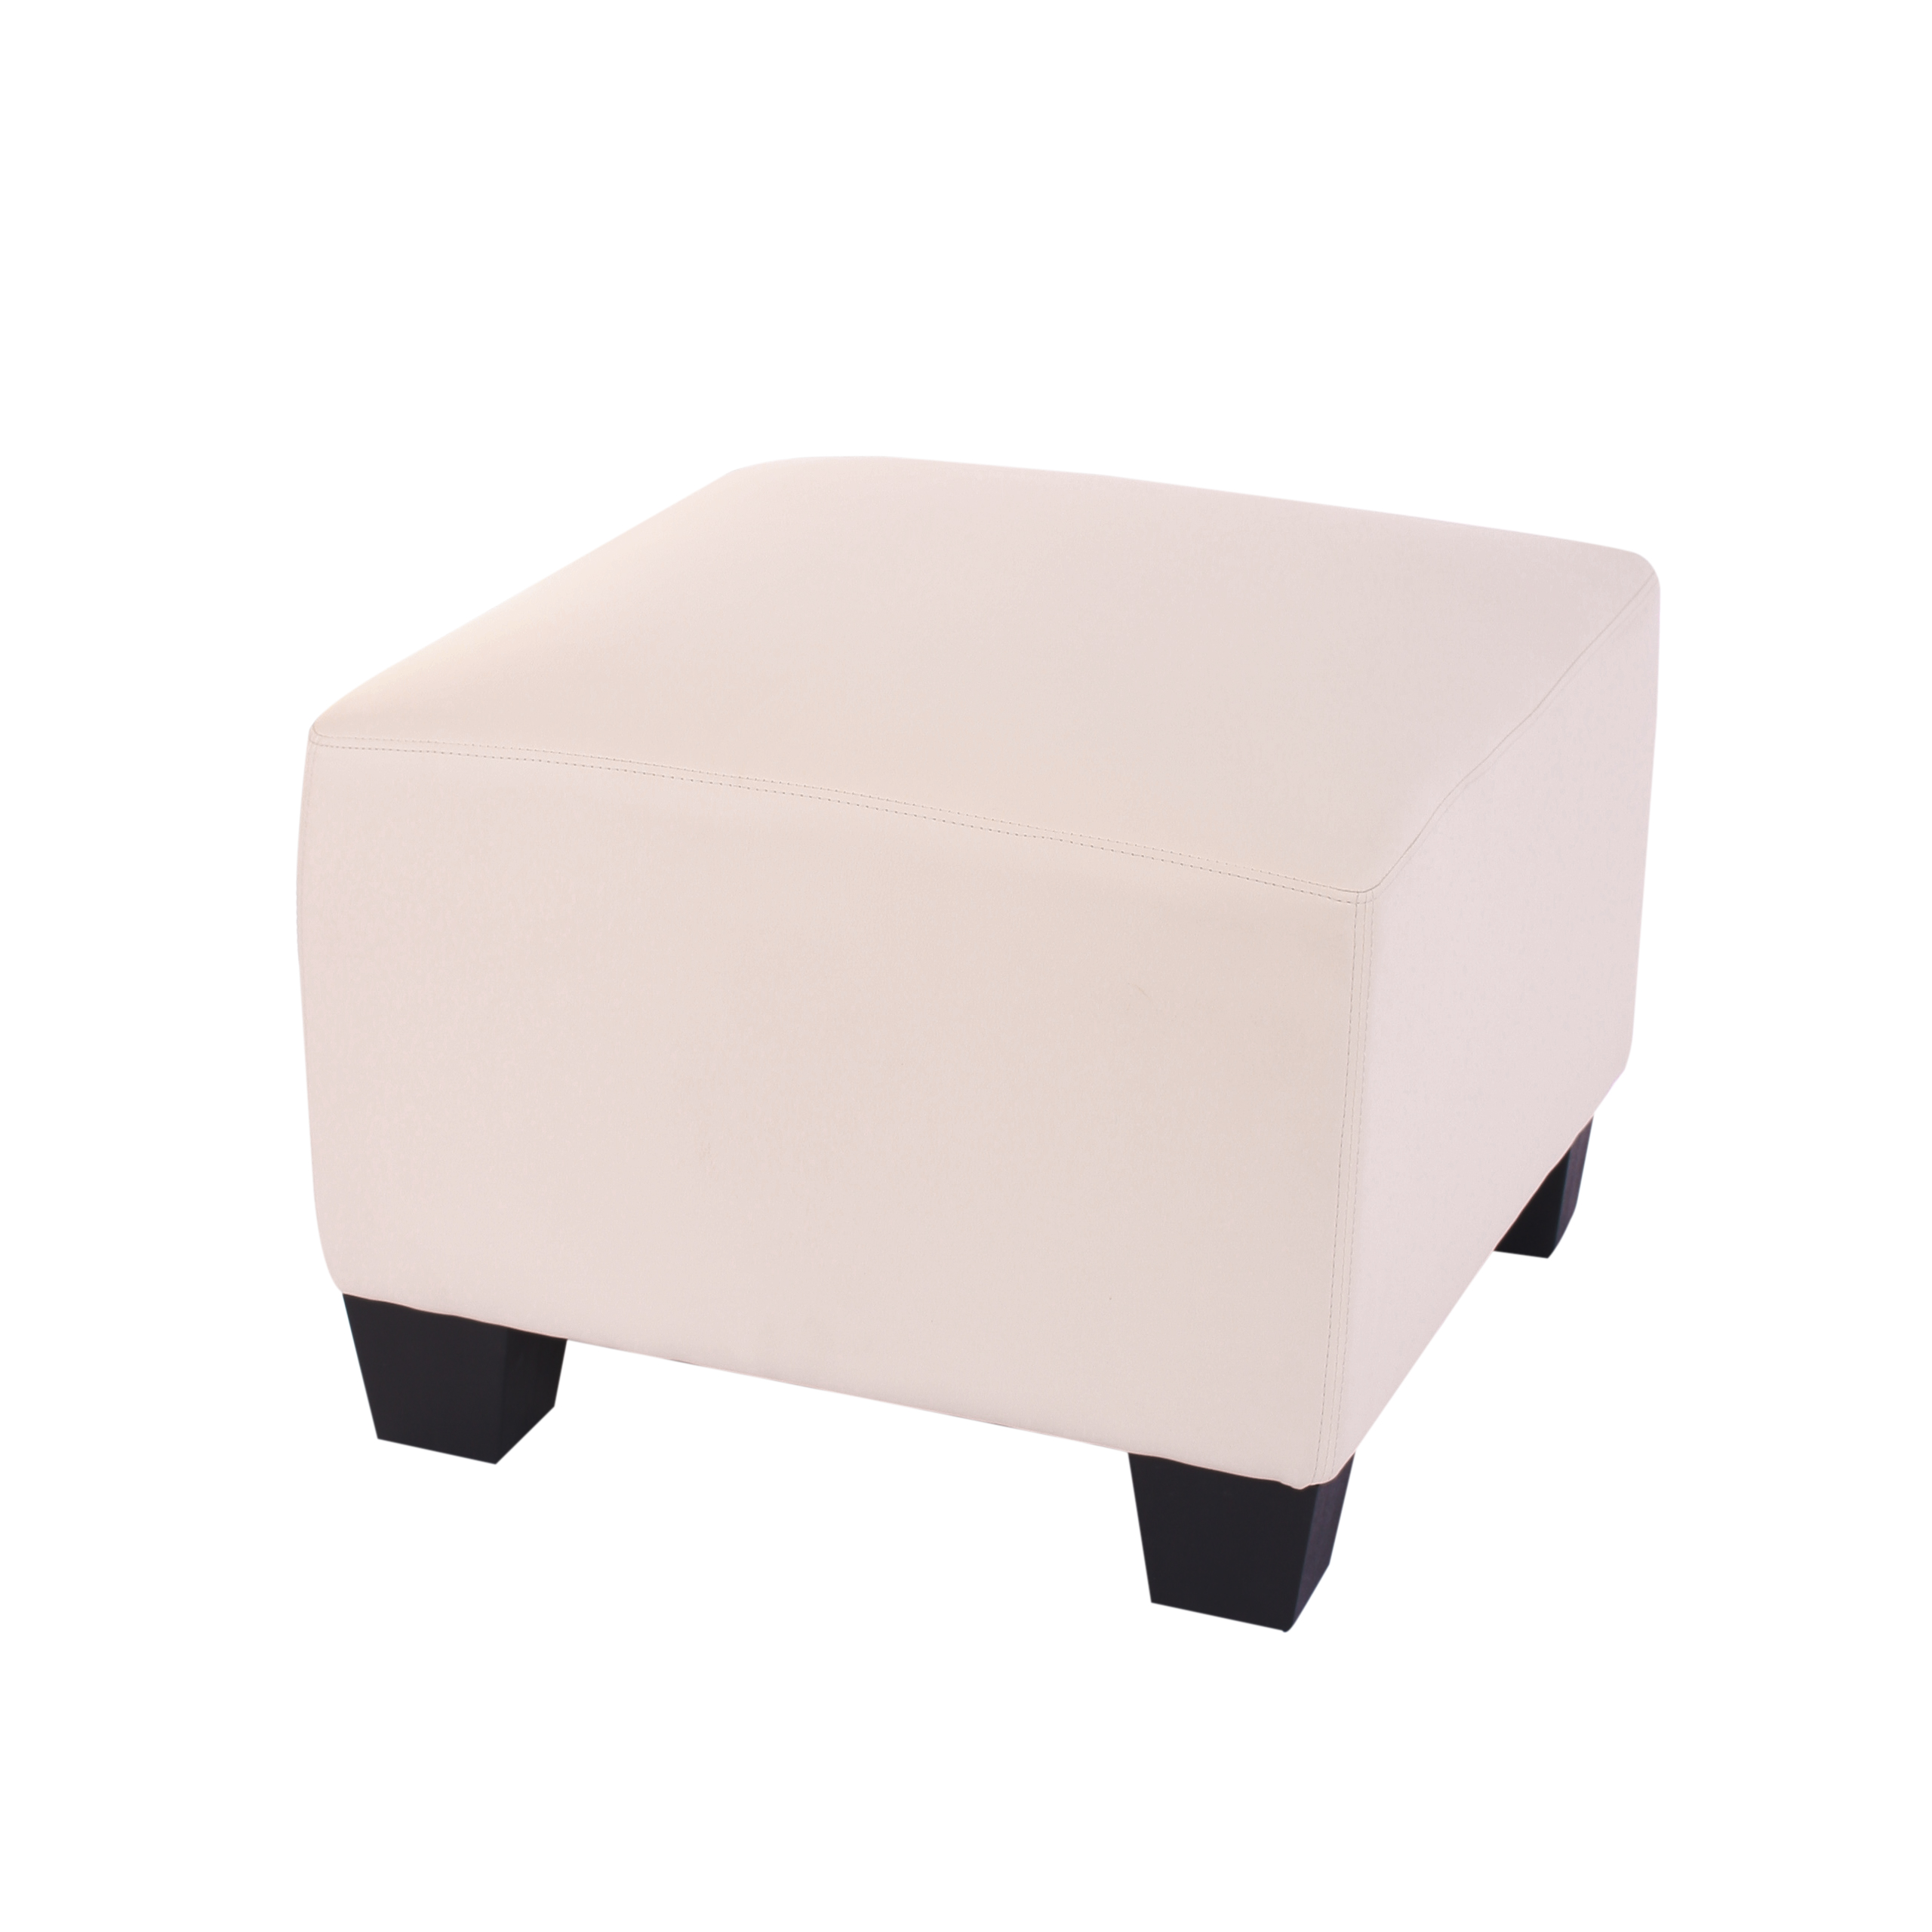 pouf easy lounge creme pf easyloungec ad1 vente de meubles et d 39 articles de confort prix. Black Bedroom Furniture Sets. Home Design Ideas